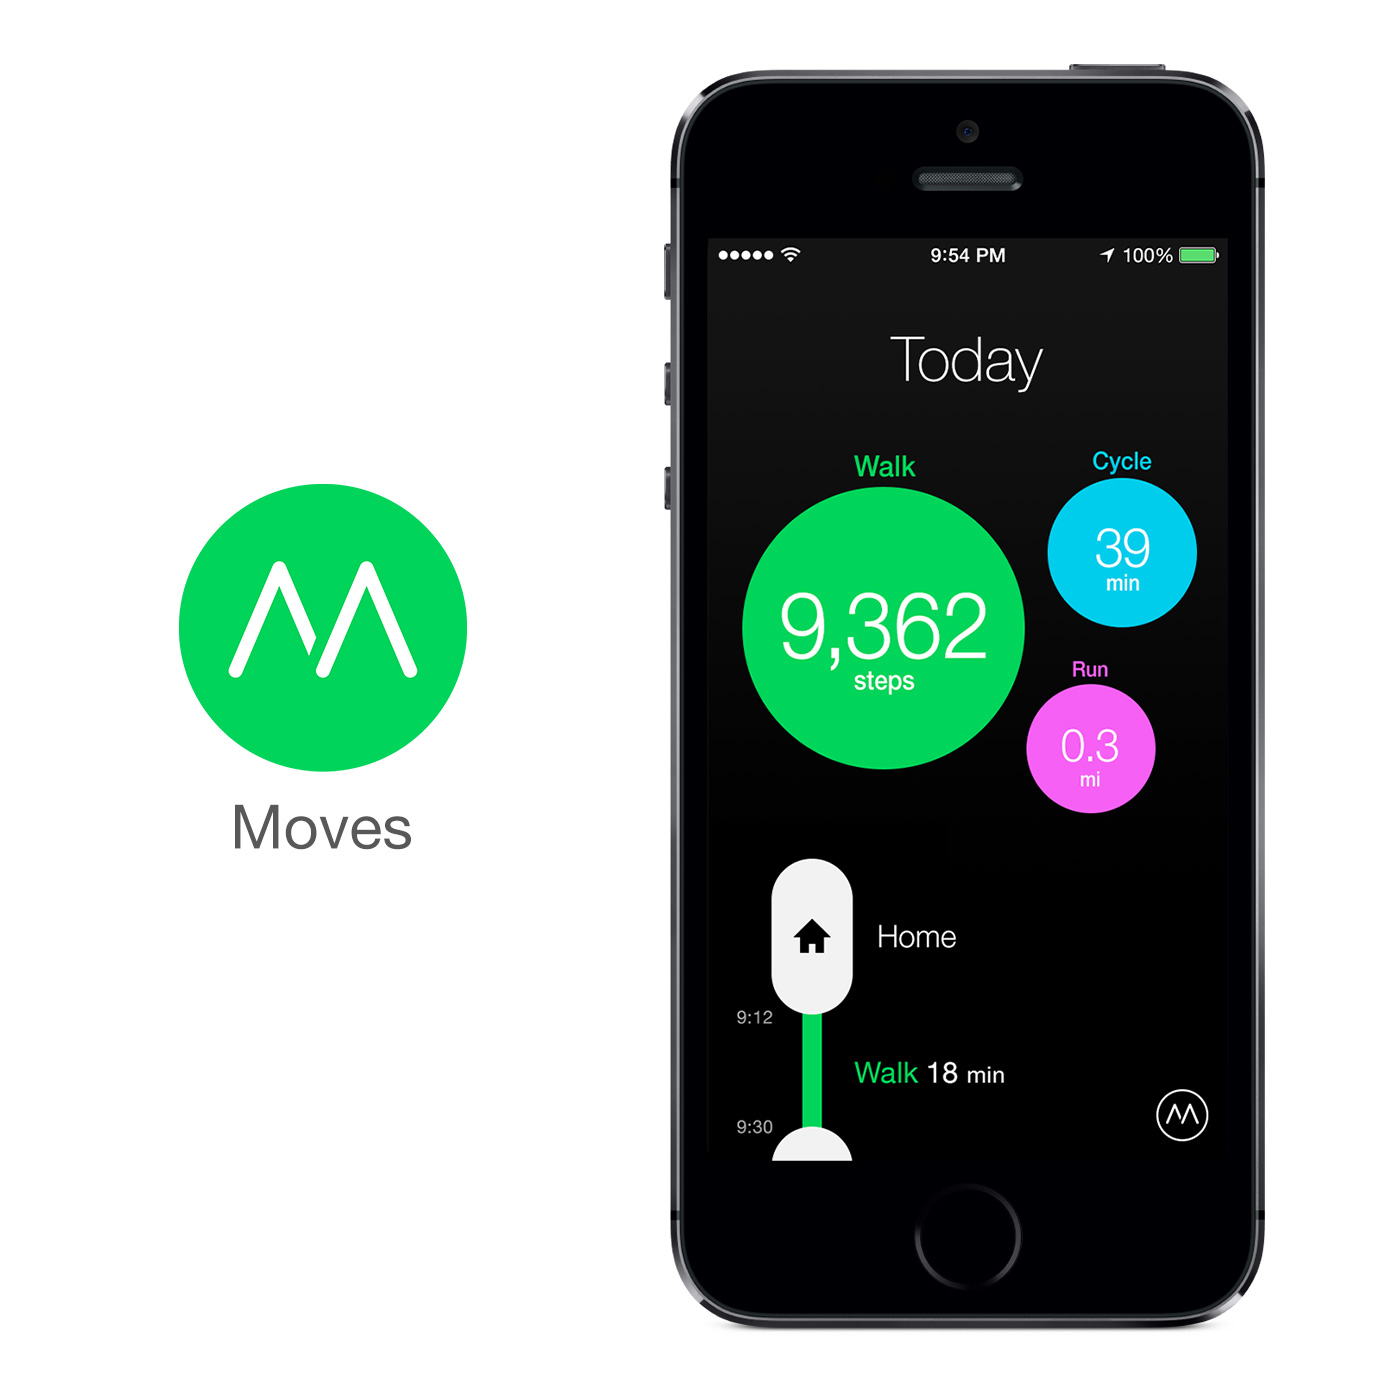 Facebook buys Moves app